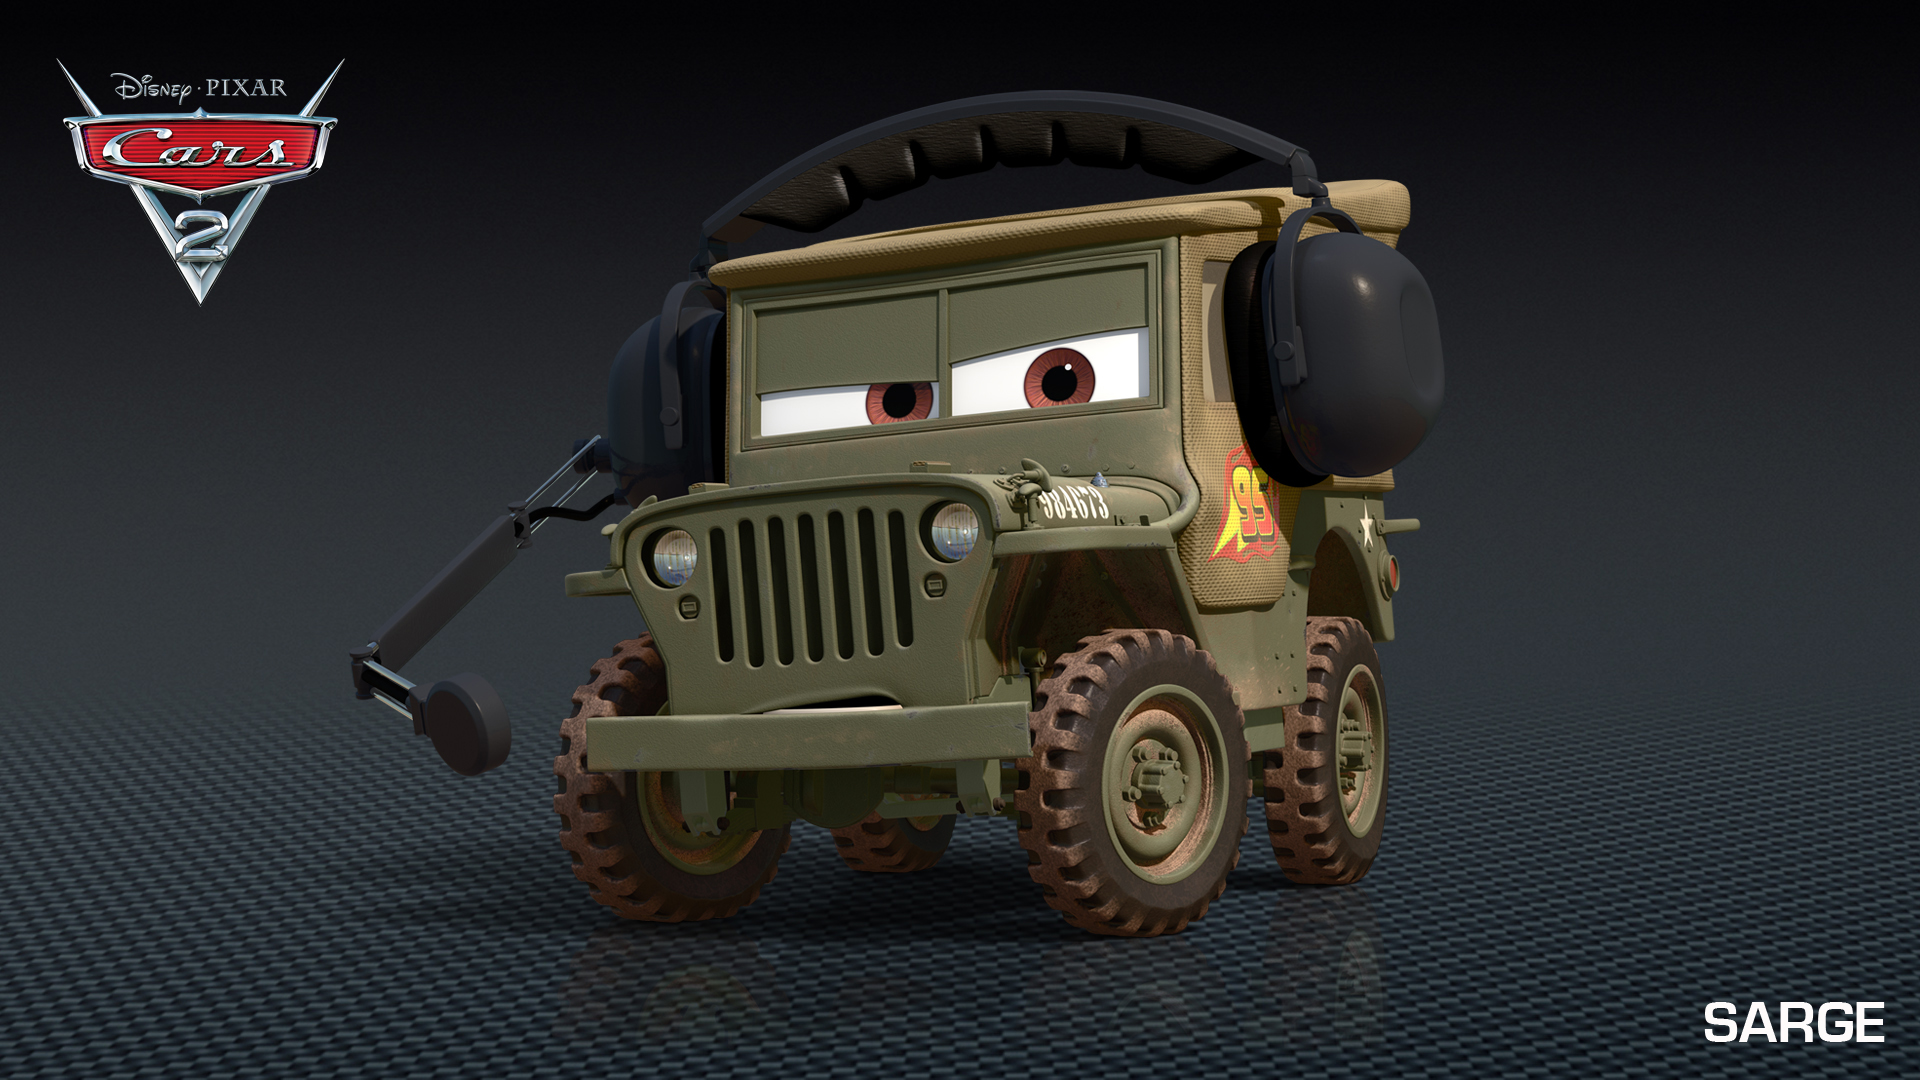 Characters In Cars: Cars 2 Characters Images & Descriptions Revealed